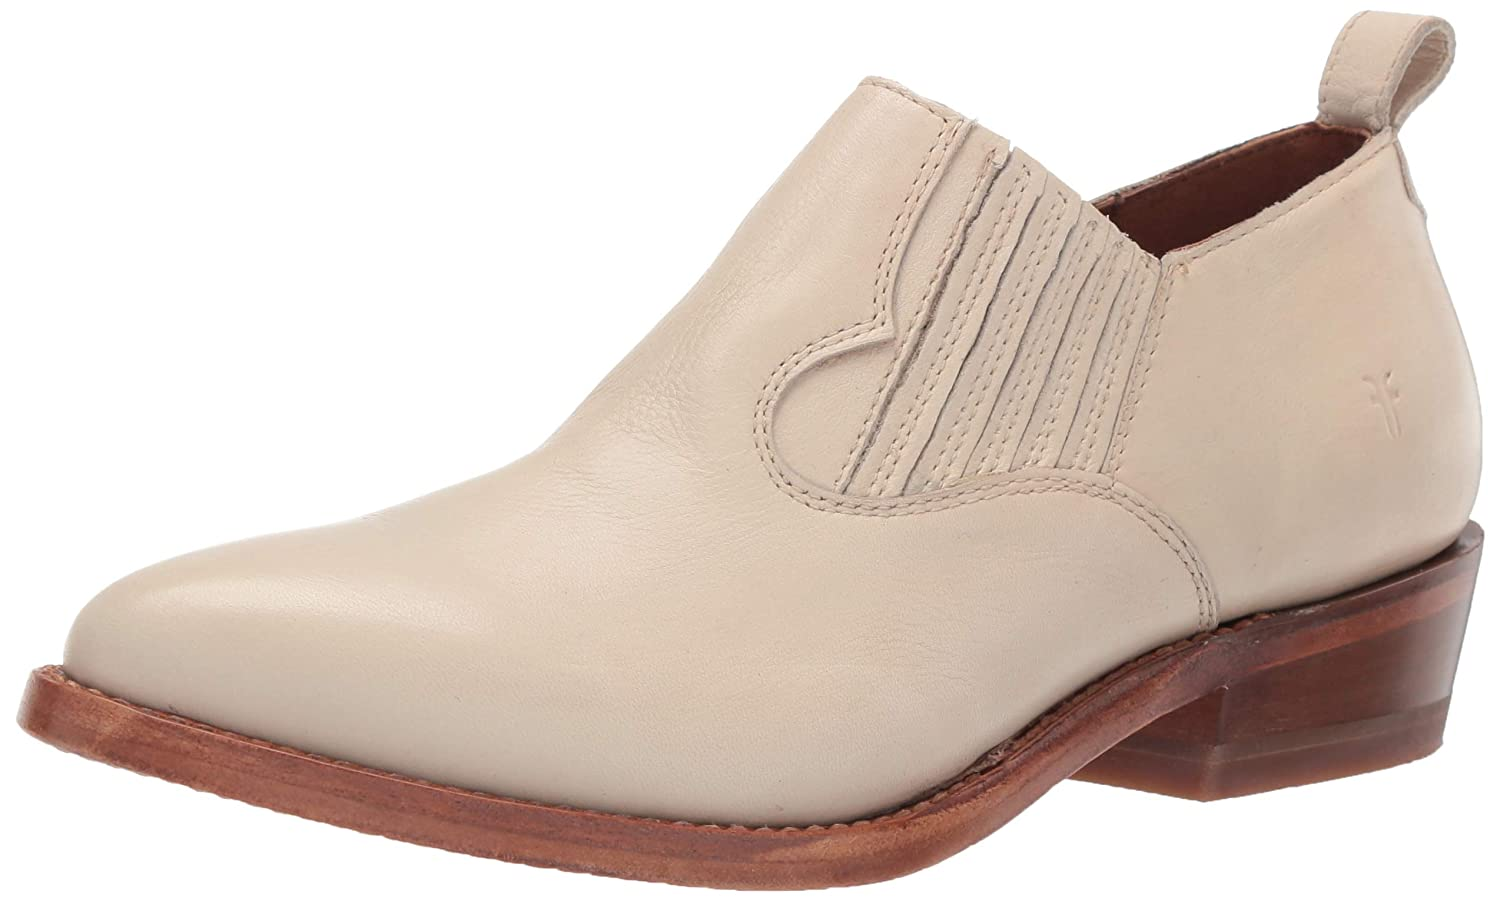 Off White Frye Women's Billy Shootie Western Boot